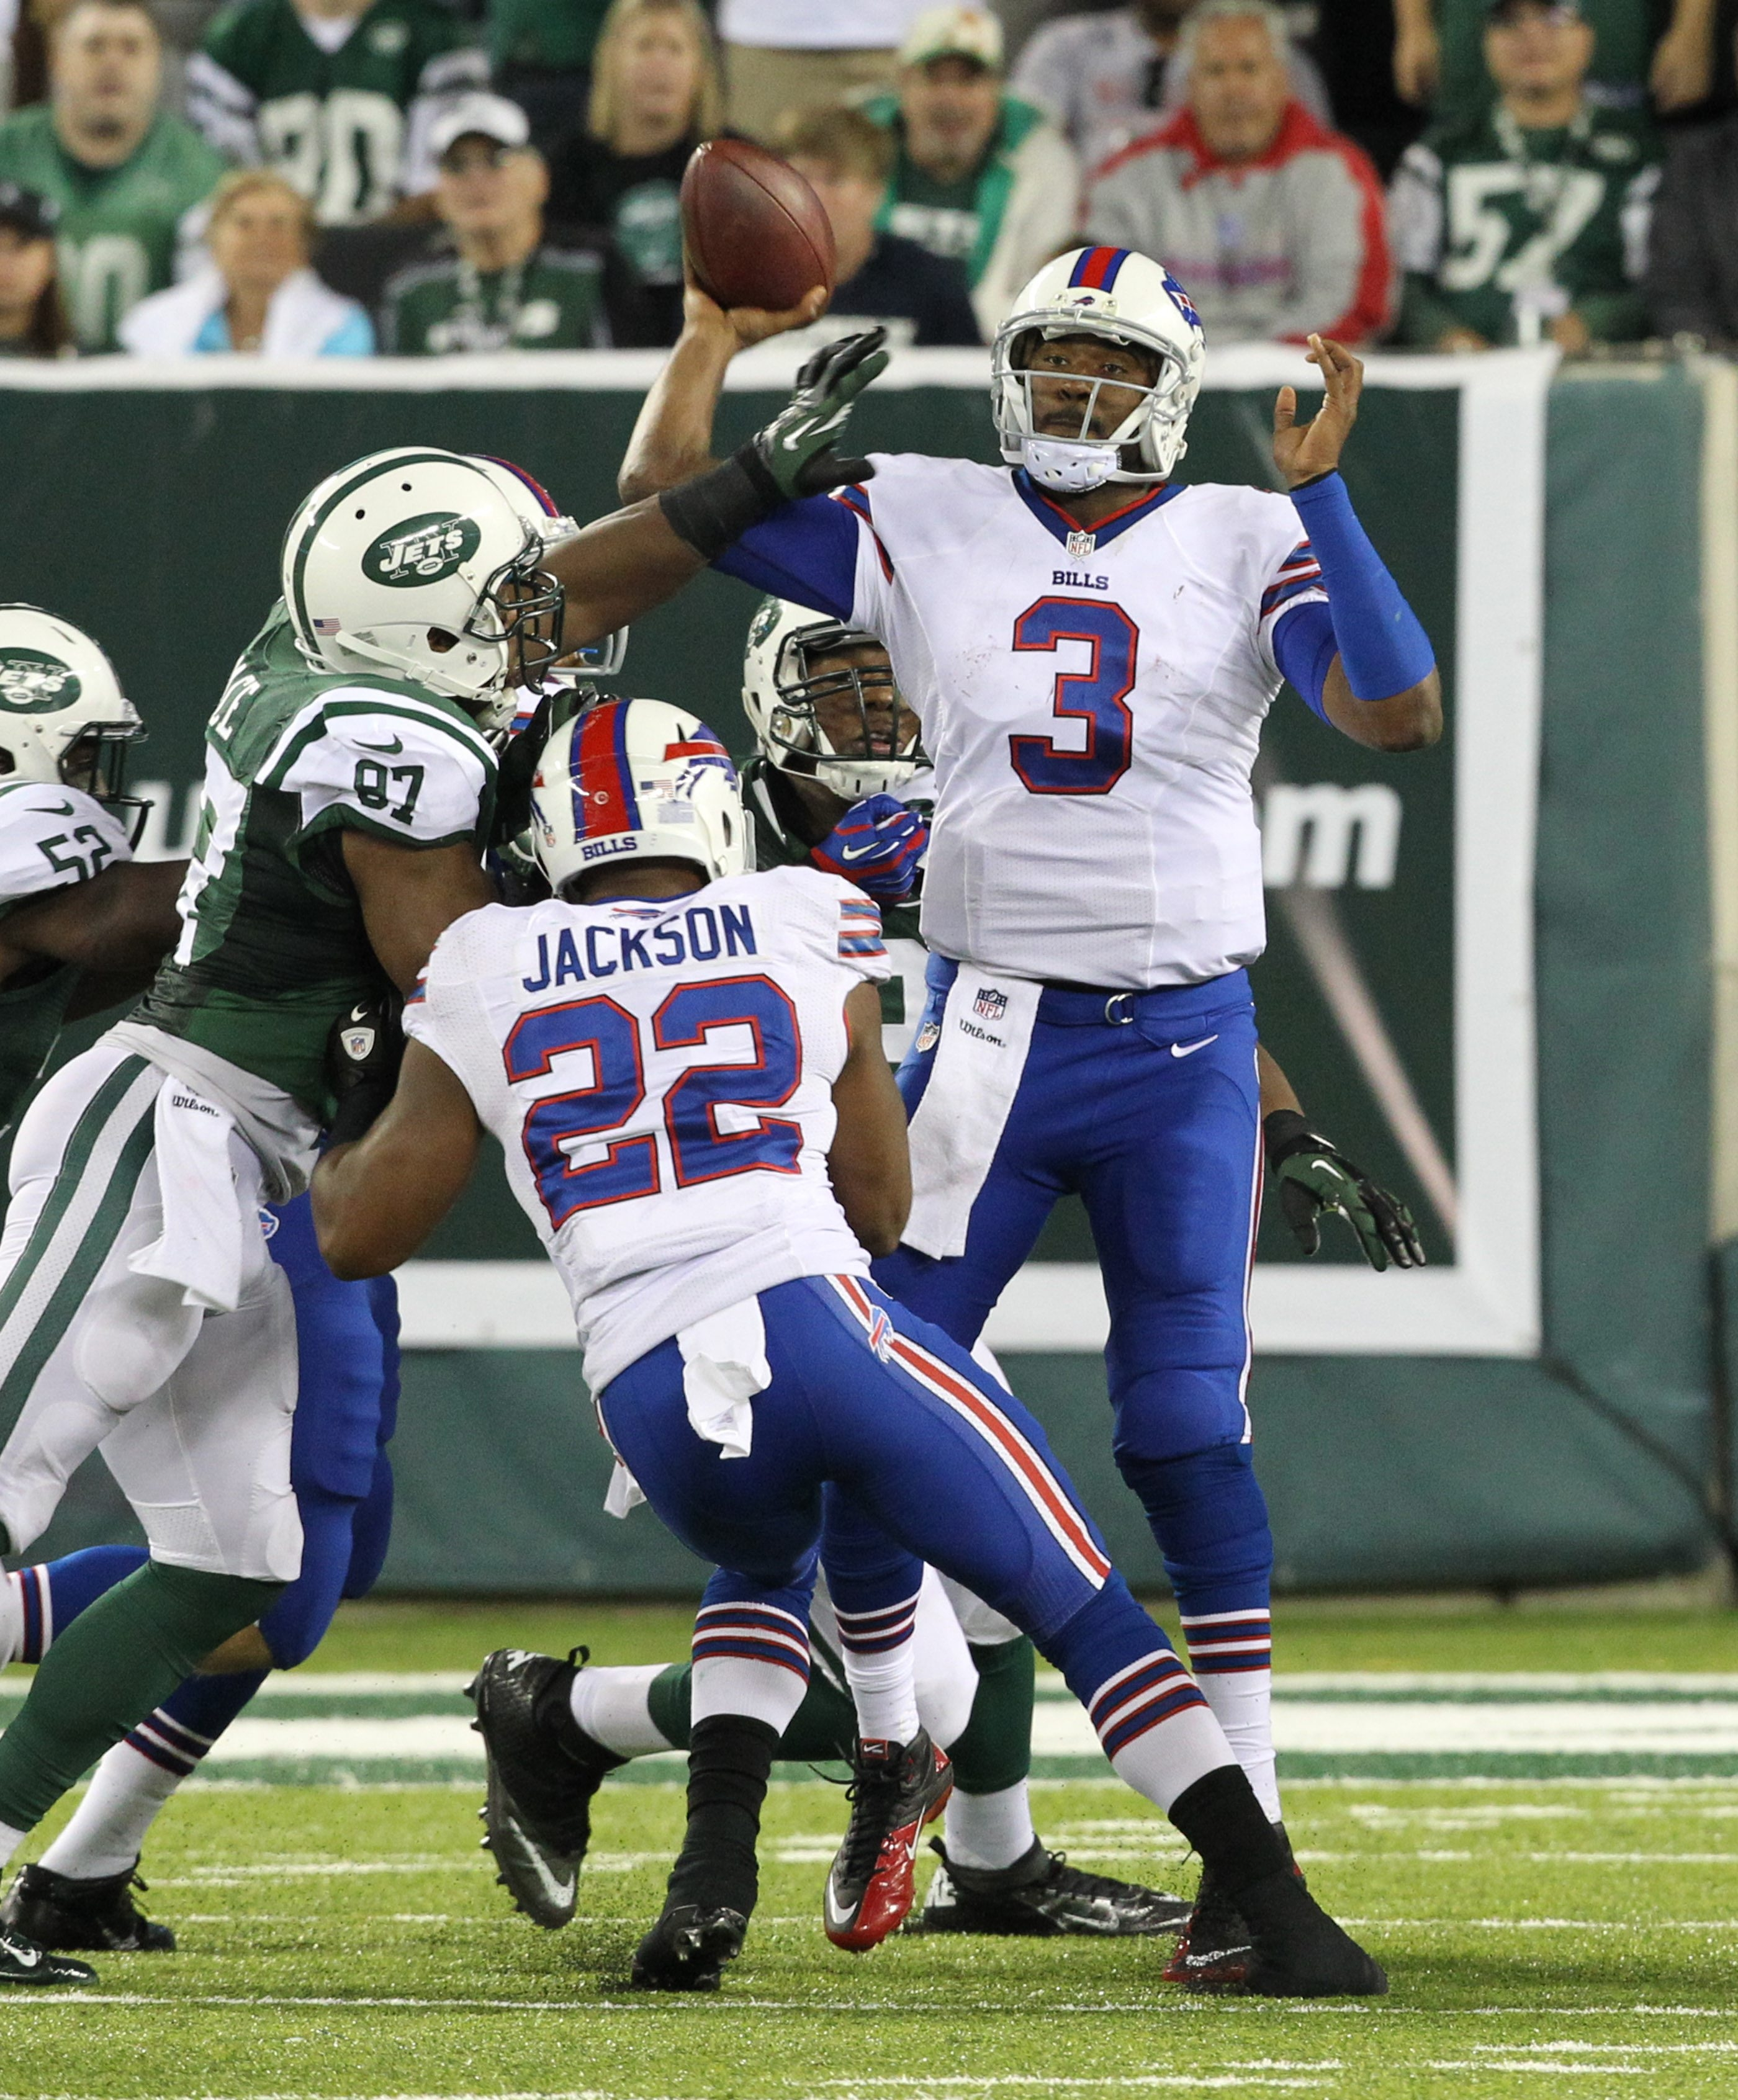 Buffalo Bills quarterback EJ Manuel didn't have too much time to throw in the face of a fierce pass rush on Sunday at MetLife Stadium.